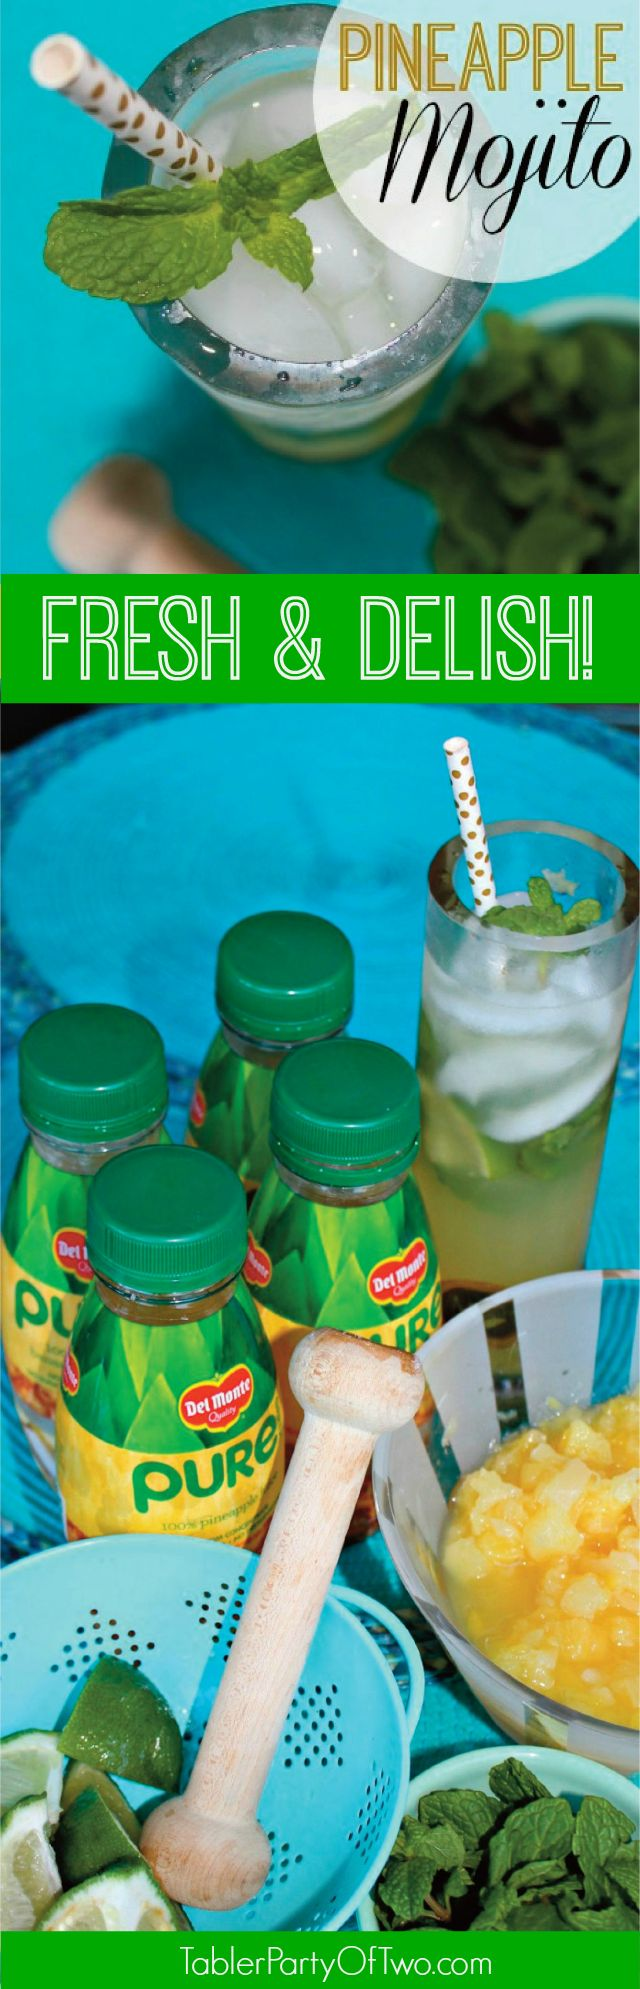 Pineapple Mojito- so fresh, so delish... One of my favorite cocktails ever! TablerPartyofTwo.com